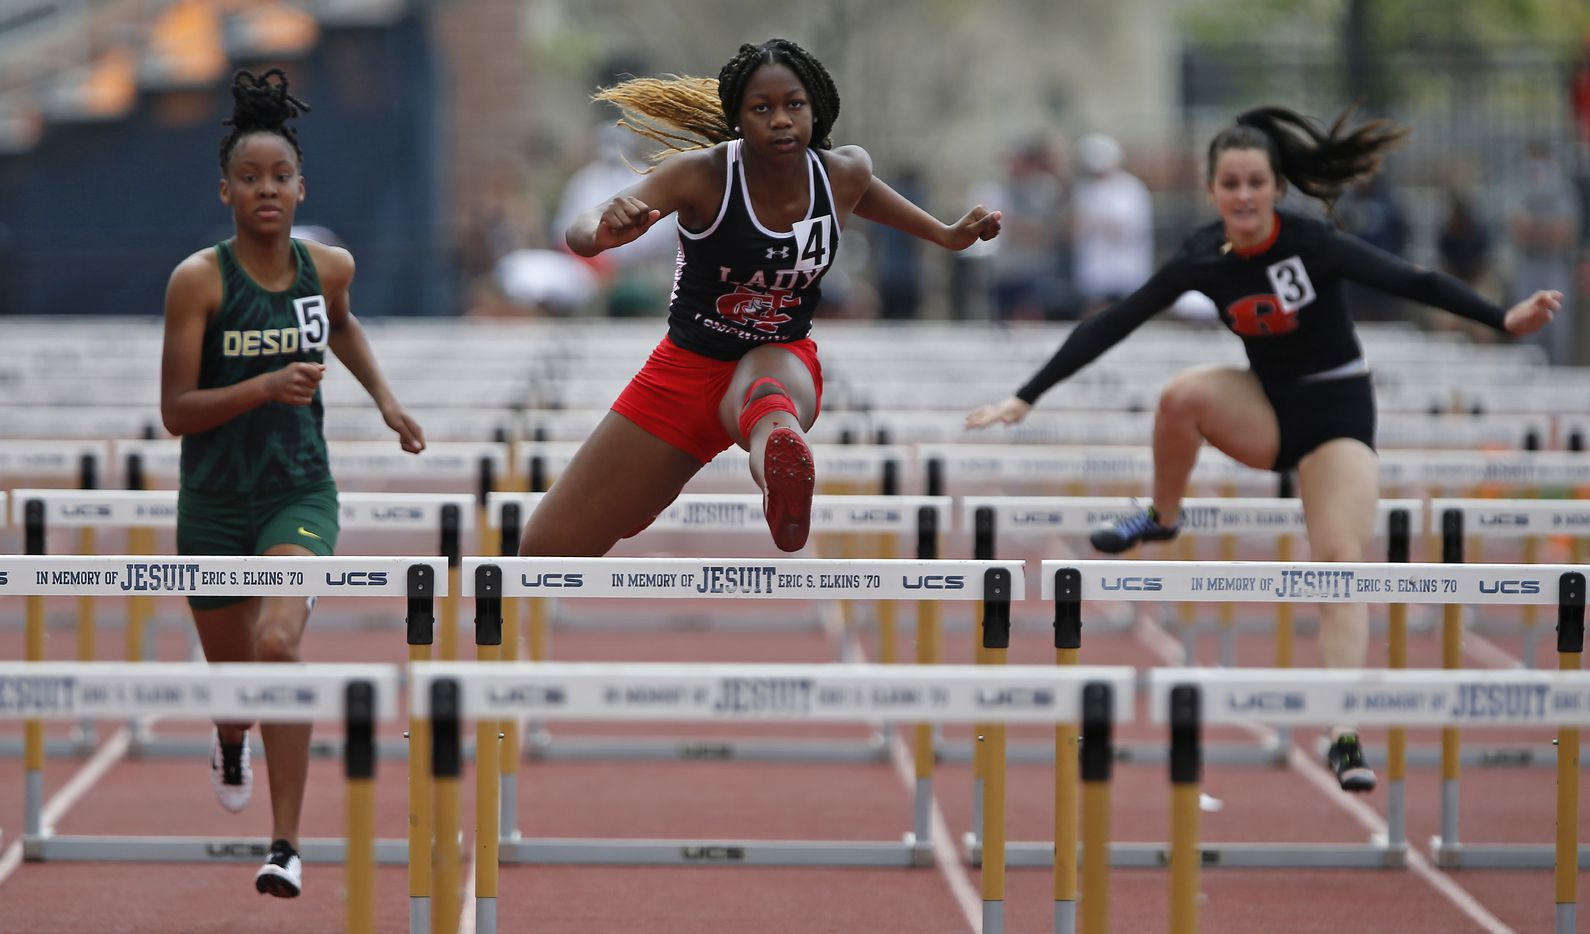 Cedar Hill High School's Charidee Morgan (center), 15, won her heat in the 100 hurdles during the Jesuit-Sheaner Relays held at Jesuit College Preparatory School in Dallas on Saturday, March 27, 2021.  (Stewart F. House/Special Contributor)